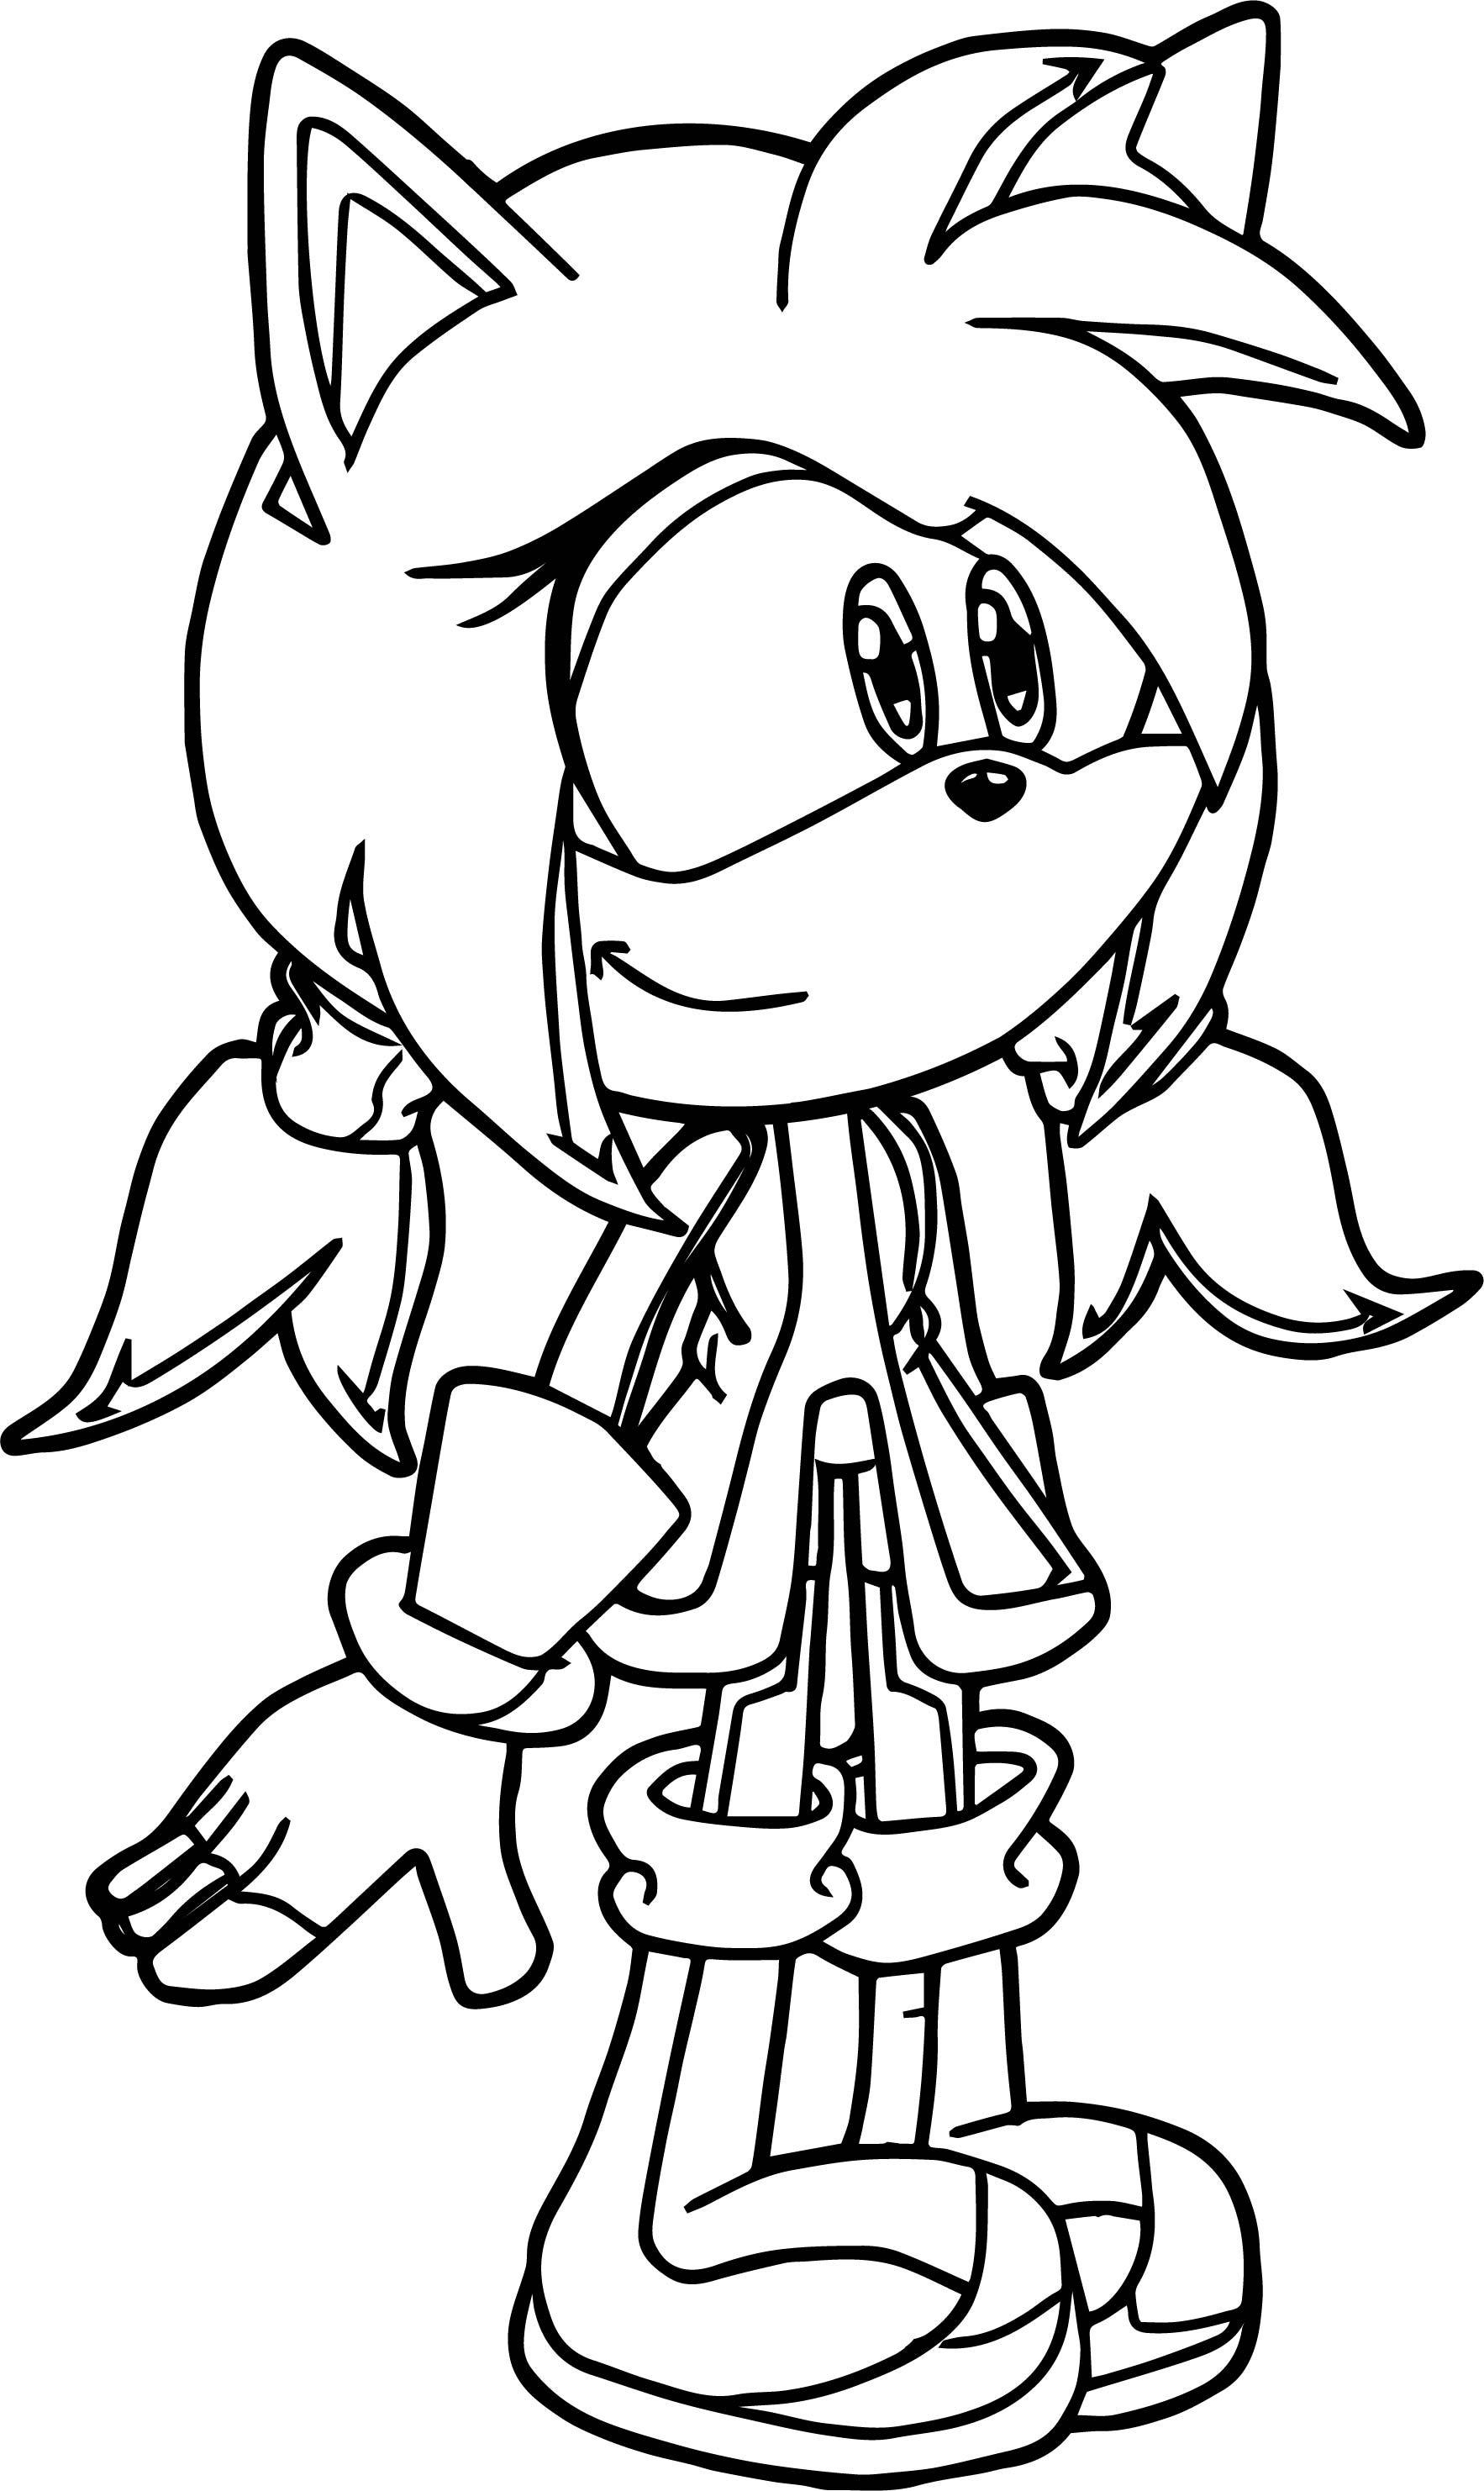 kid amy rose coloring page wecoloringpage